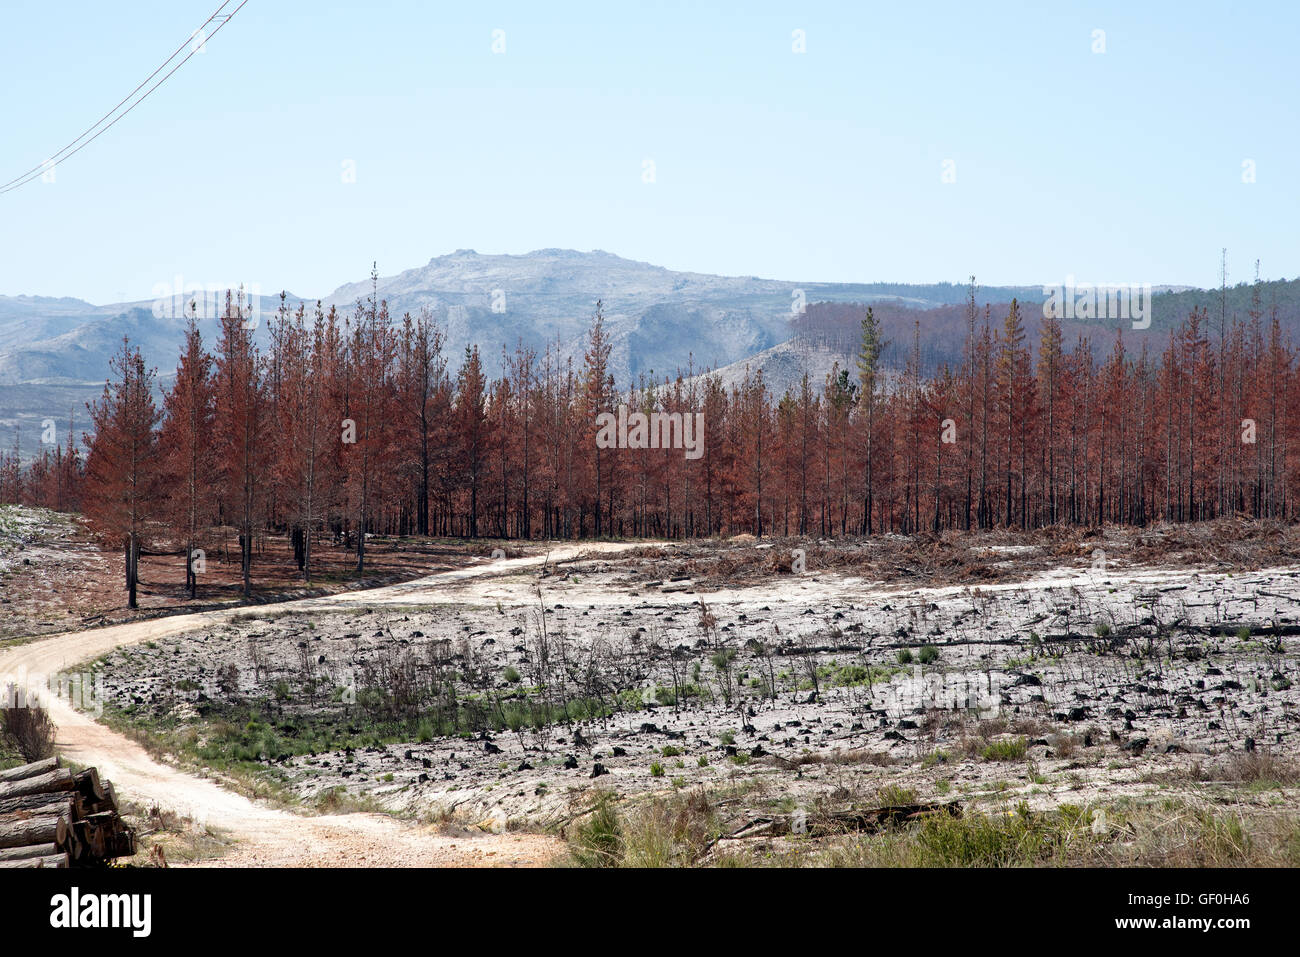 FIRE DAMAGE WESTERN CAPE SOUTH AFRICA. Fir trees burned by a forest fire close to Elgin Western Cape South Africa - Stock Image